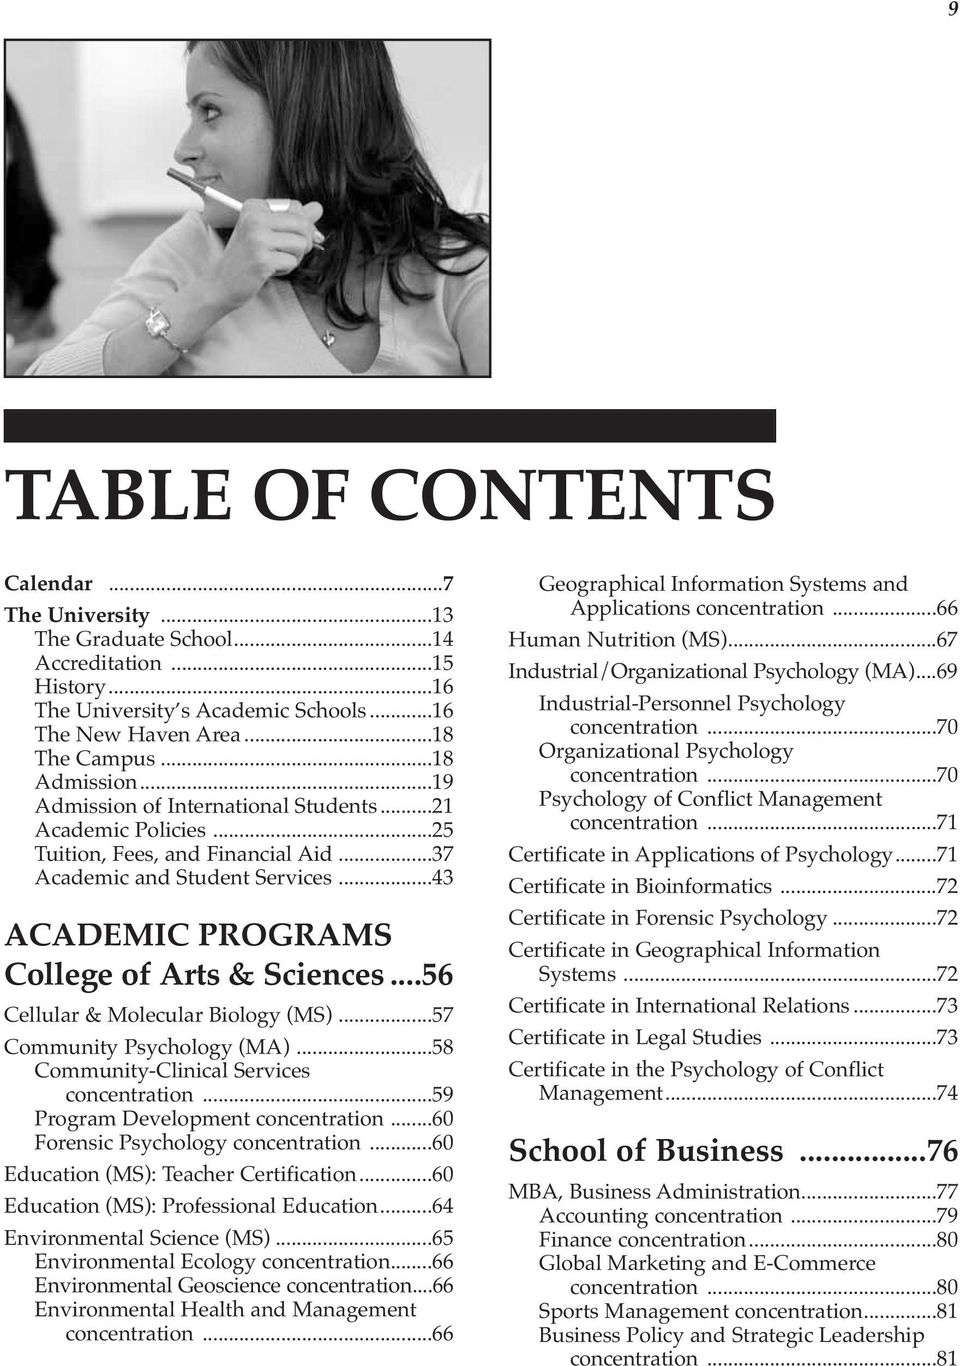 ..56 Cellular & Molecular Biology (MS)...57 Community Psychology (MA)...58 Community-Clinical Services concentration...59 Program Development concentration...60 Forensic Psychology concentration.